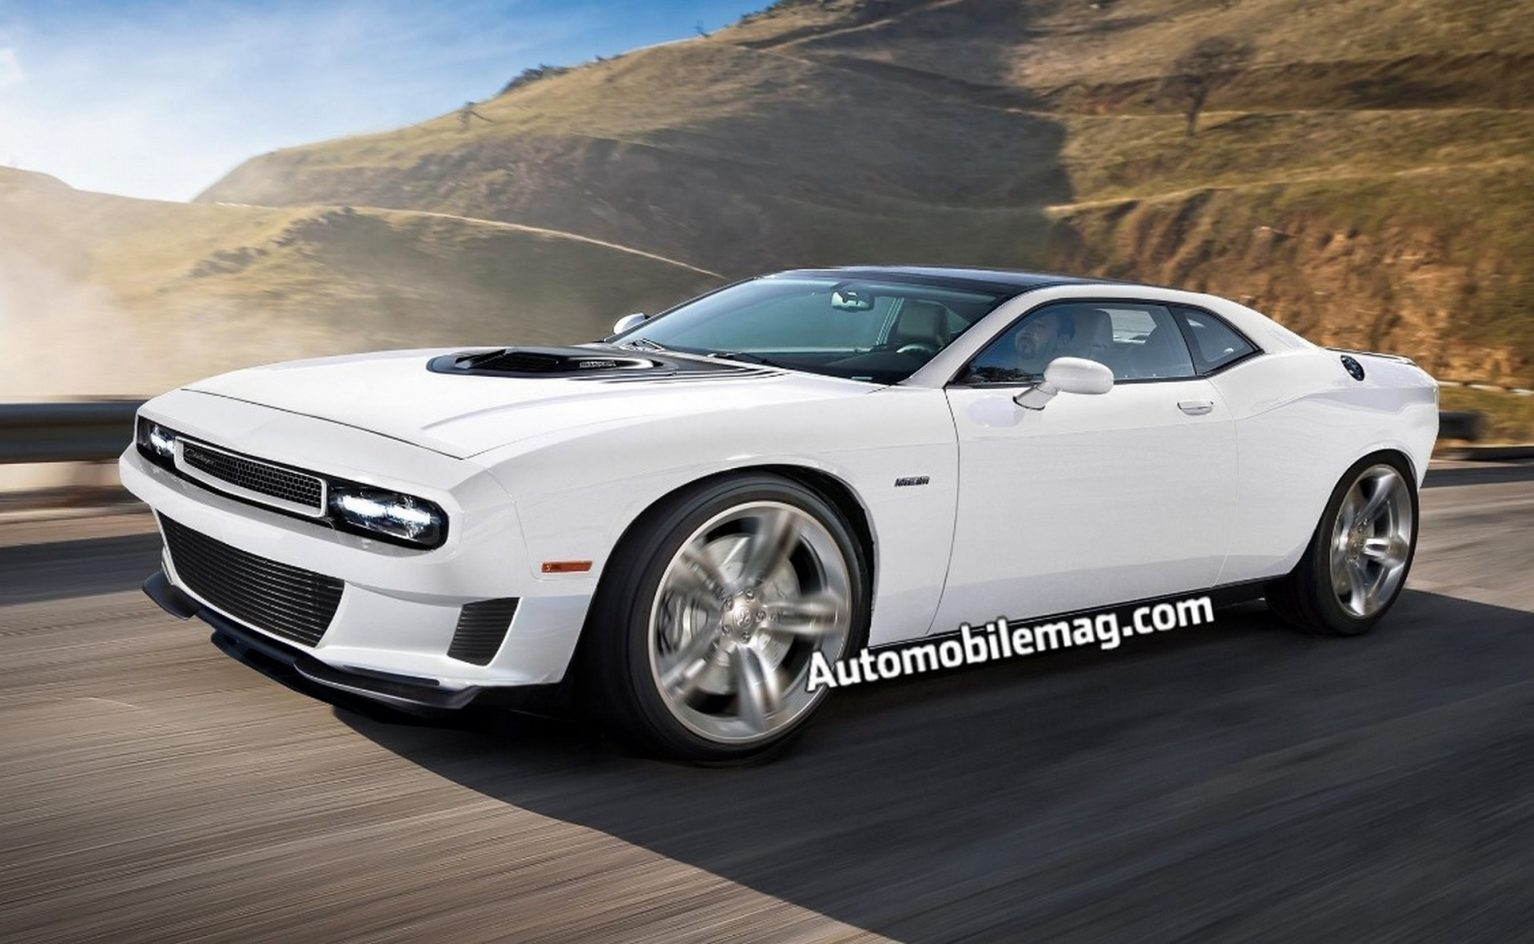 12 All New 2019 Barracuda Redesign and Review